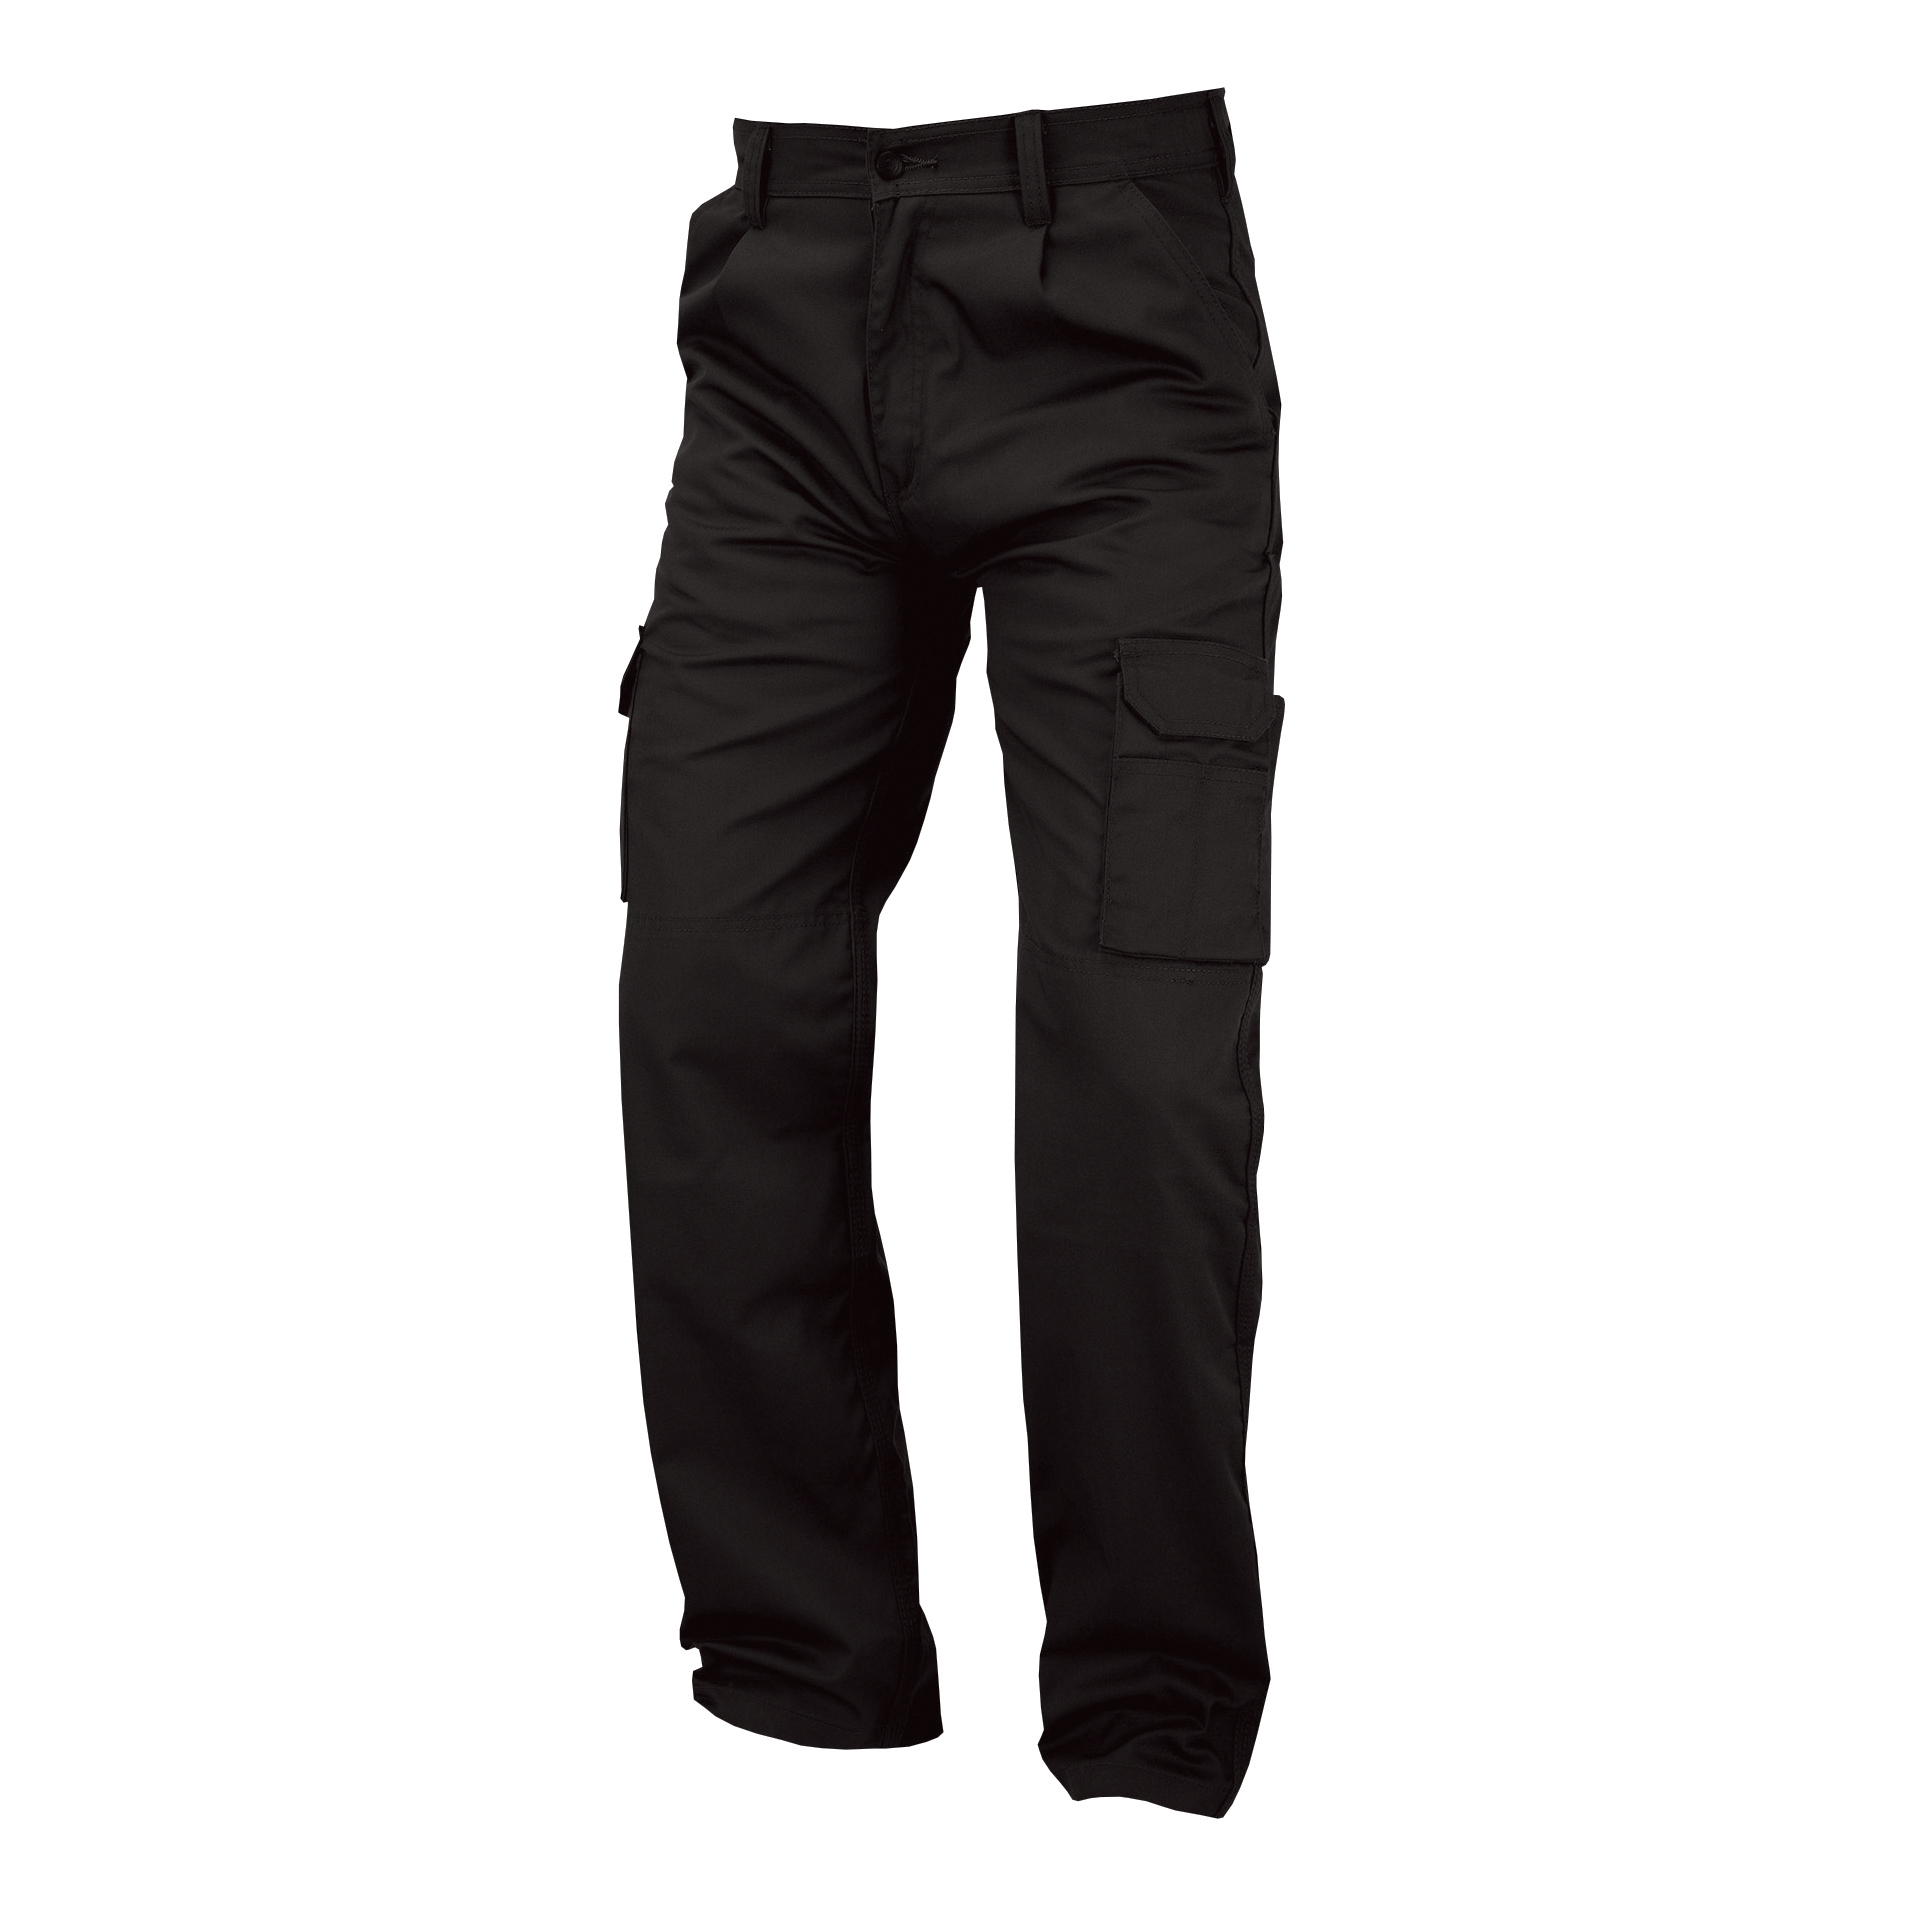 Combat / Cargo Combat Trousers Polycotton with Pockets 32in Regular Black Ref PCTHWBL32 *1-3 Days Lead Time*